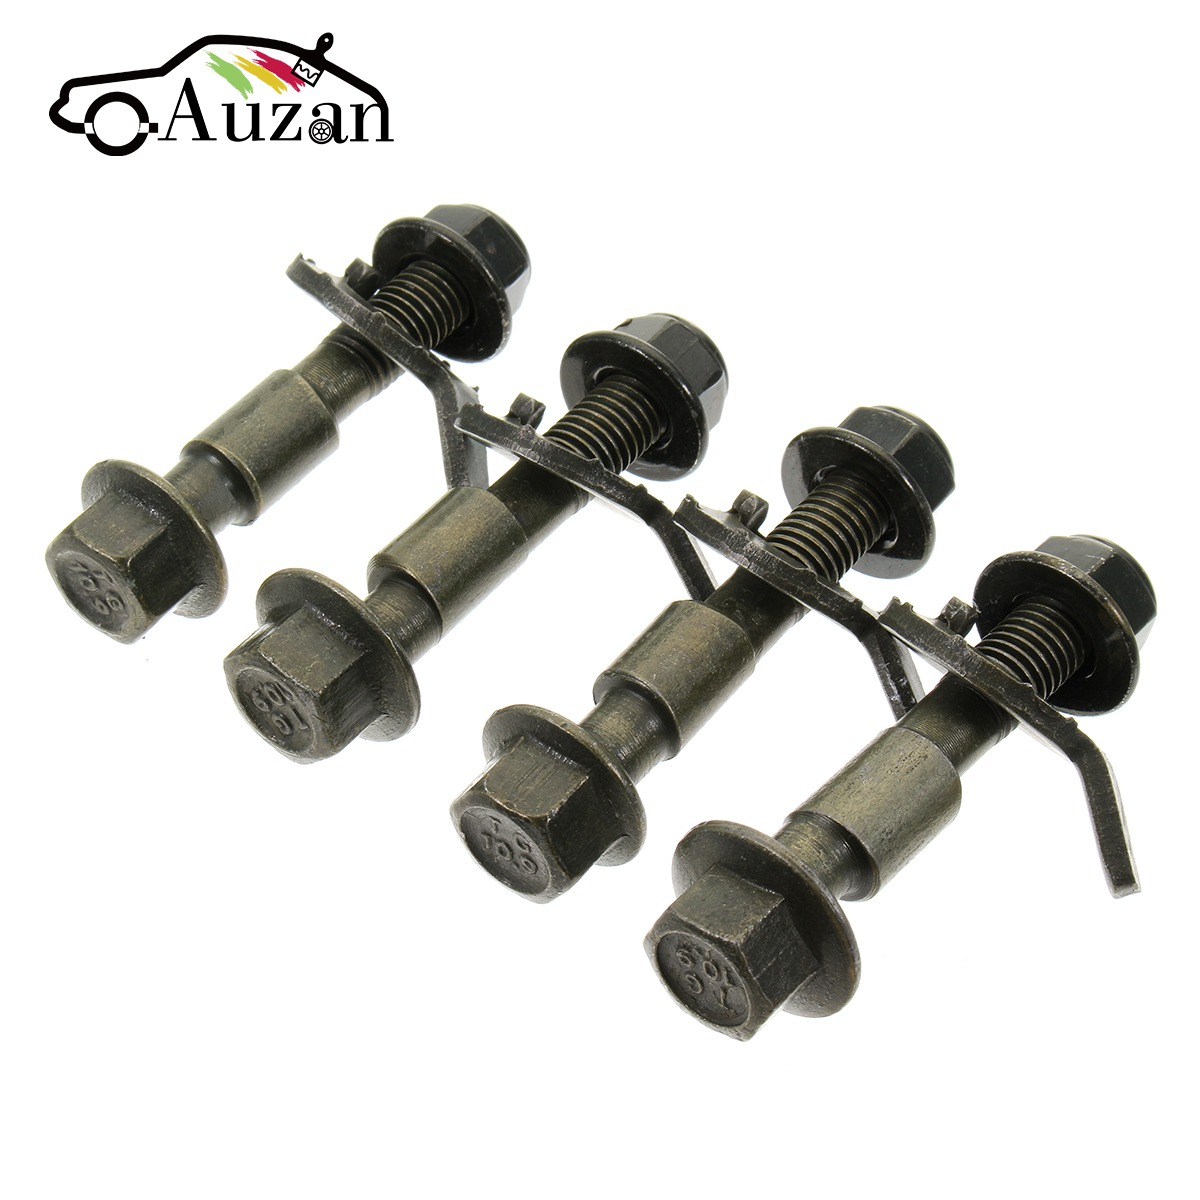 X2 14MM 10.9 STEEL ALLOY ADJUSTABLE REAR ALIGNMENT CAMBER//CONTROL CAM BOLT KIT